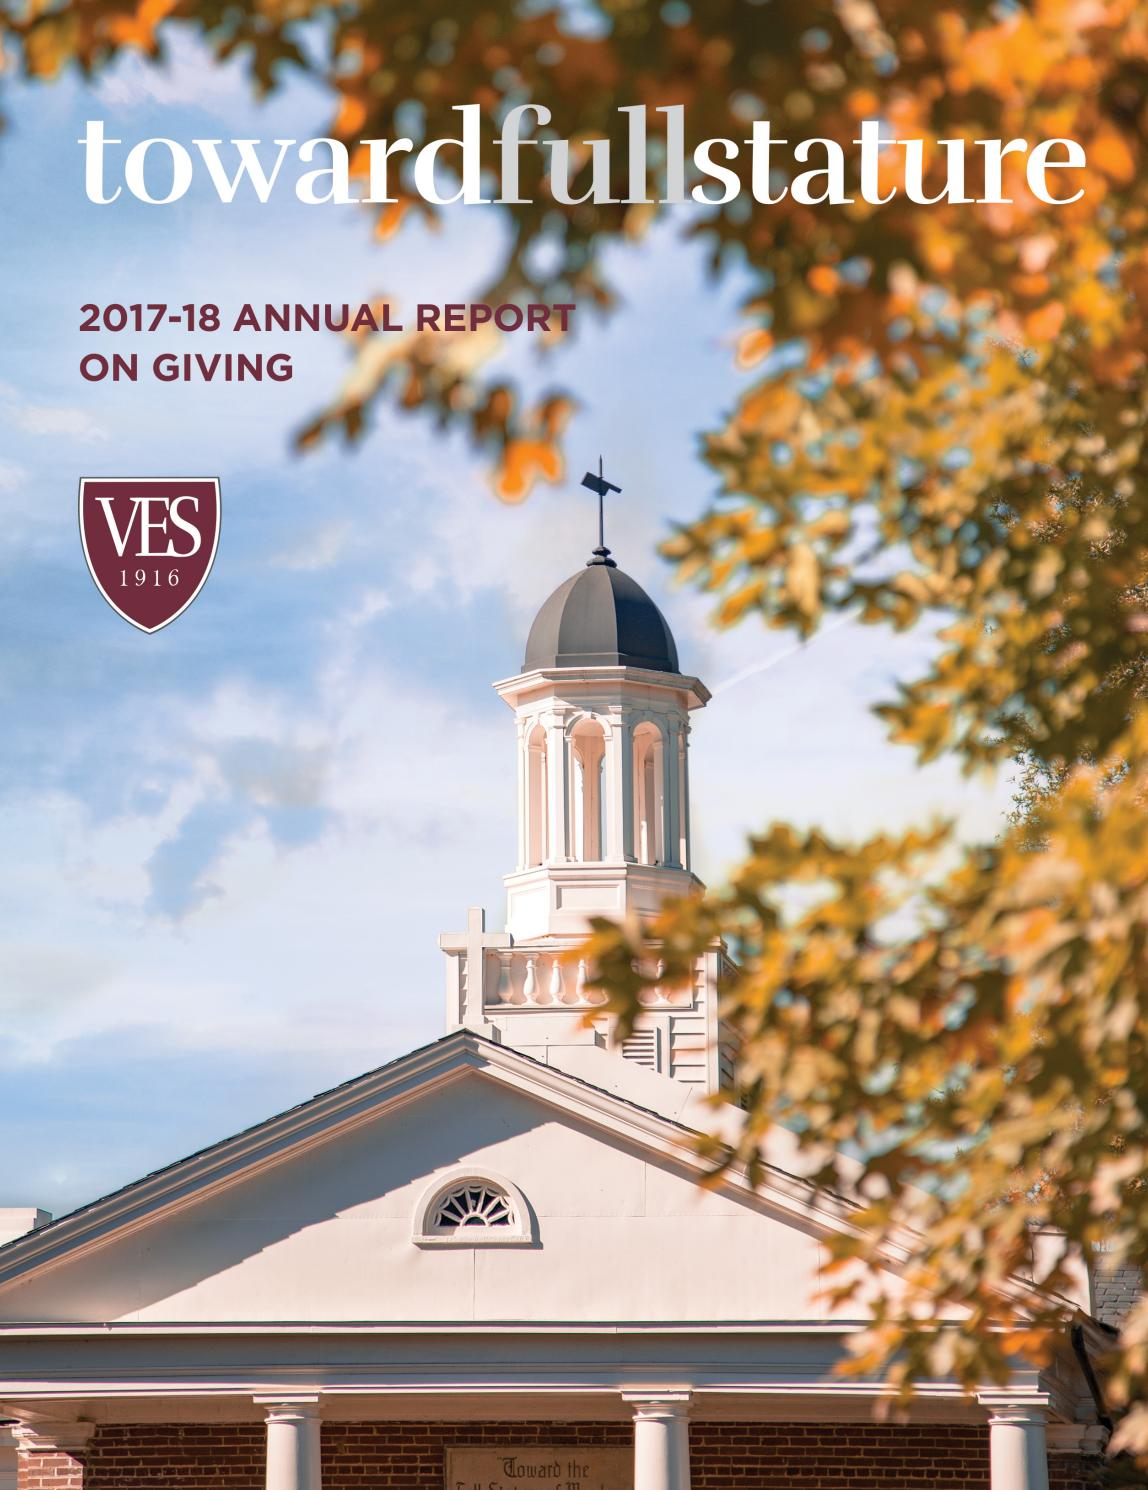 Virginia Episcopal School - 2017-18 Annual Report on Giving by VES_